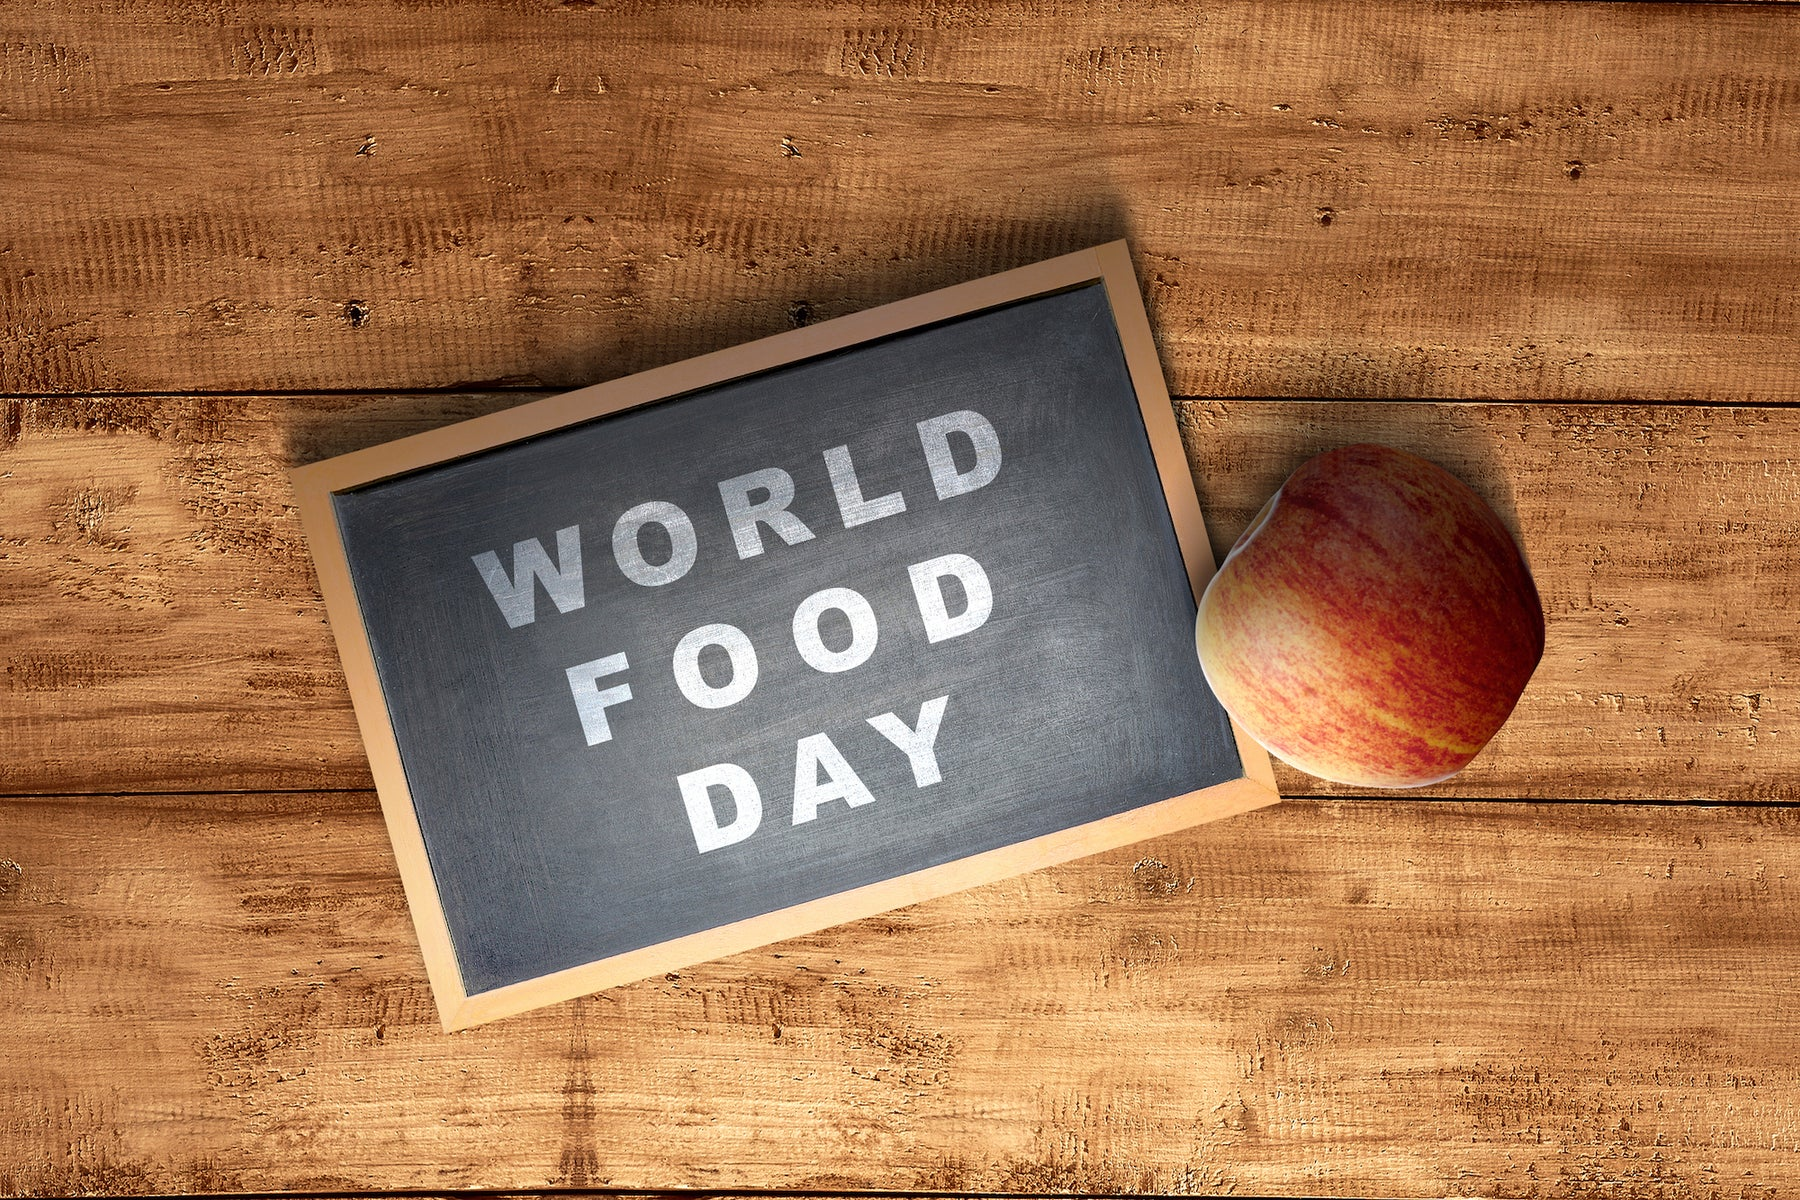 World Food Day 2020 Activities and Ideas